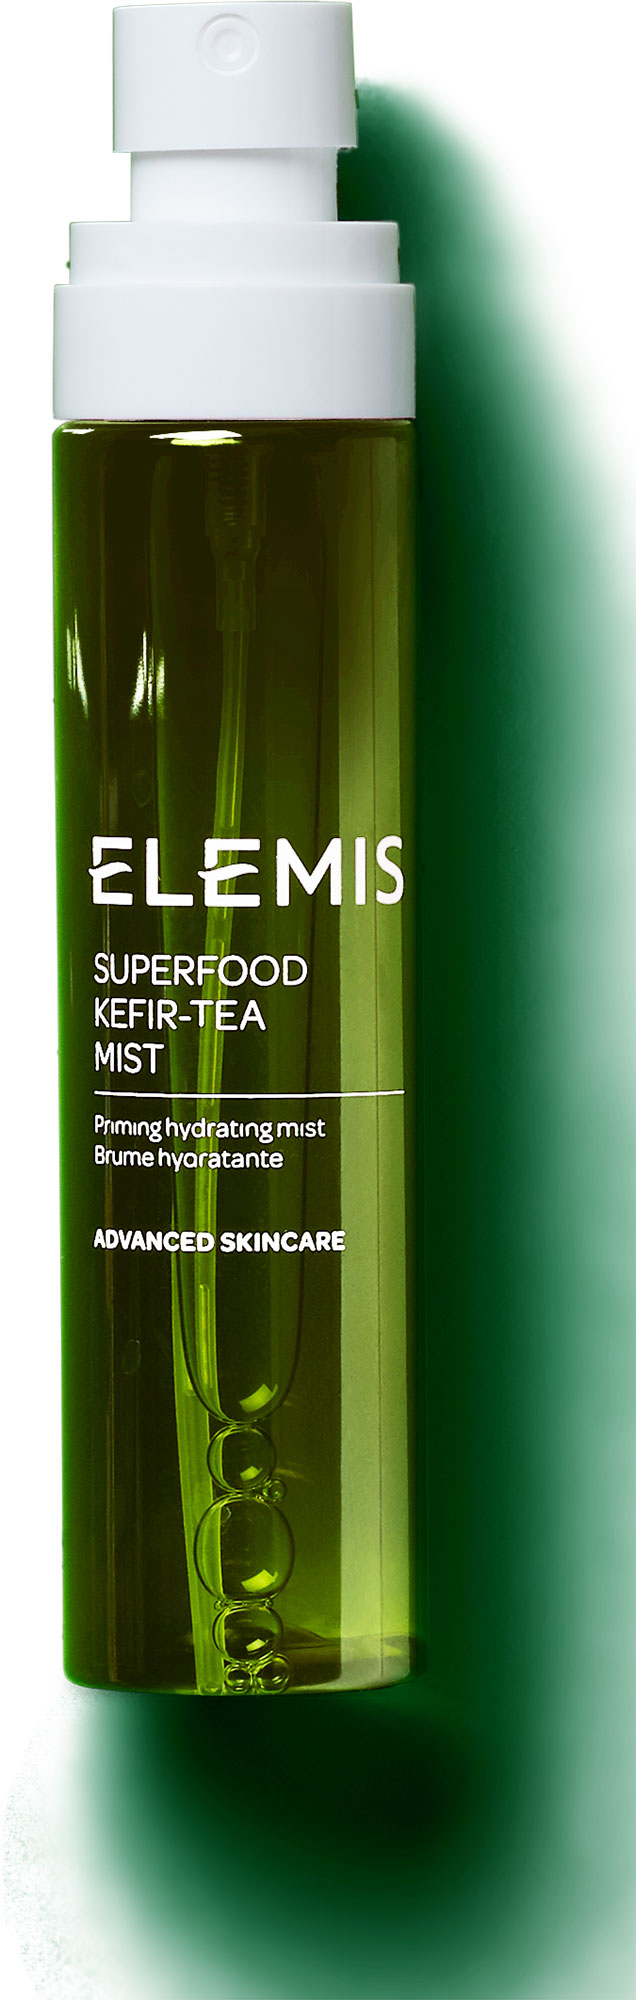 Best New Products Elemis - A green juice for your face, this four-in-one spray tones, primes, sets and hydrates thanks to a brightening prebiotic blend, antioxidant-rich roobois tea extract and moisturizing coconut water. Leave it on your desk and spritz all day, every day over or under makeup to combat that arid office air.